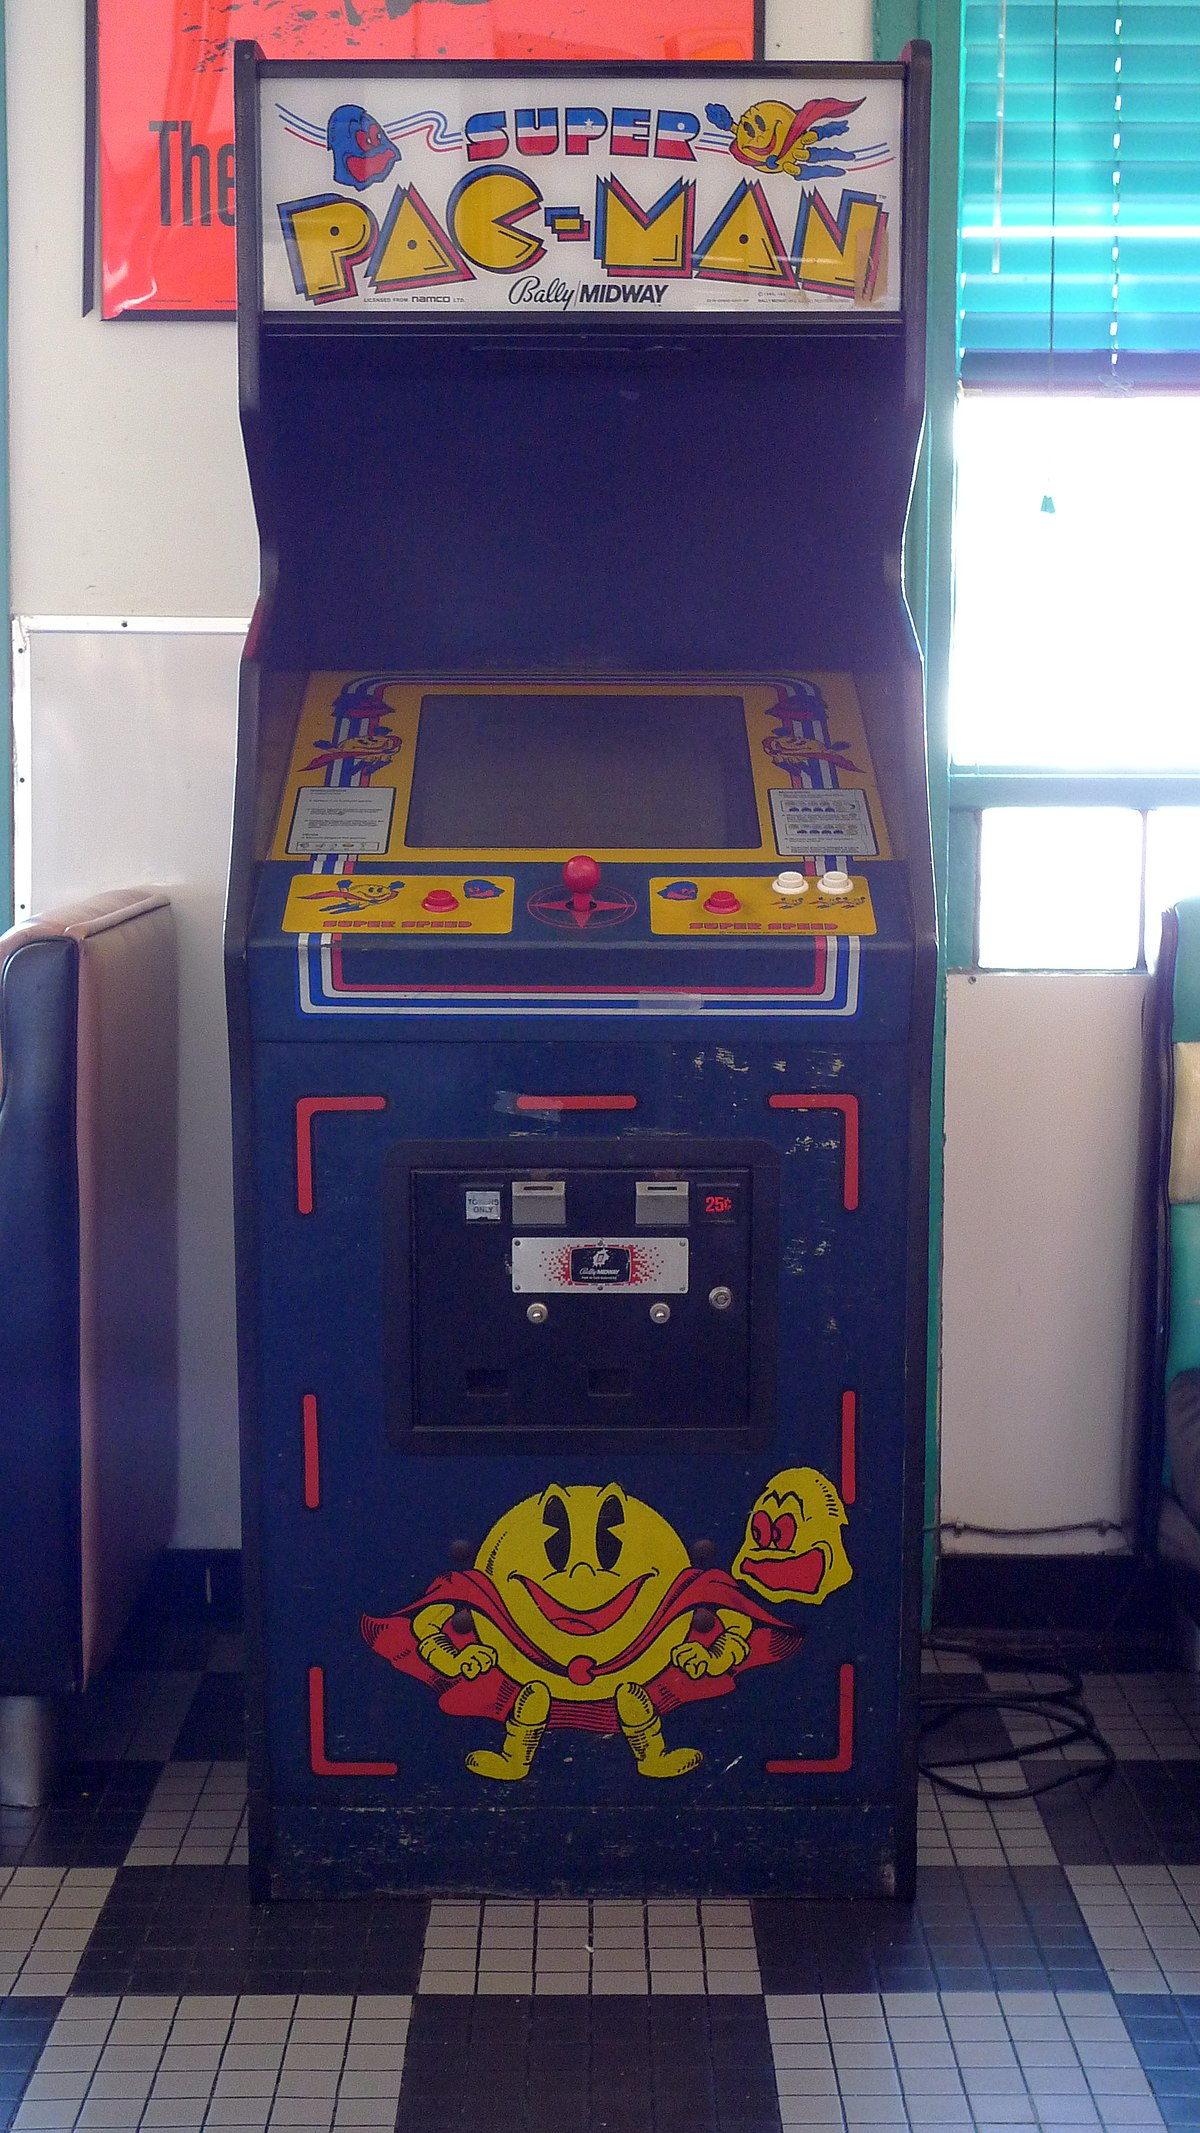 Super Pac Man Wikipedia Arcade Cabinet Dimensions Standard Control Panel Layout